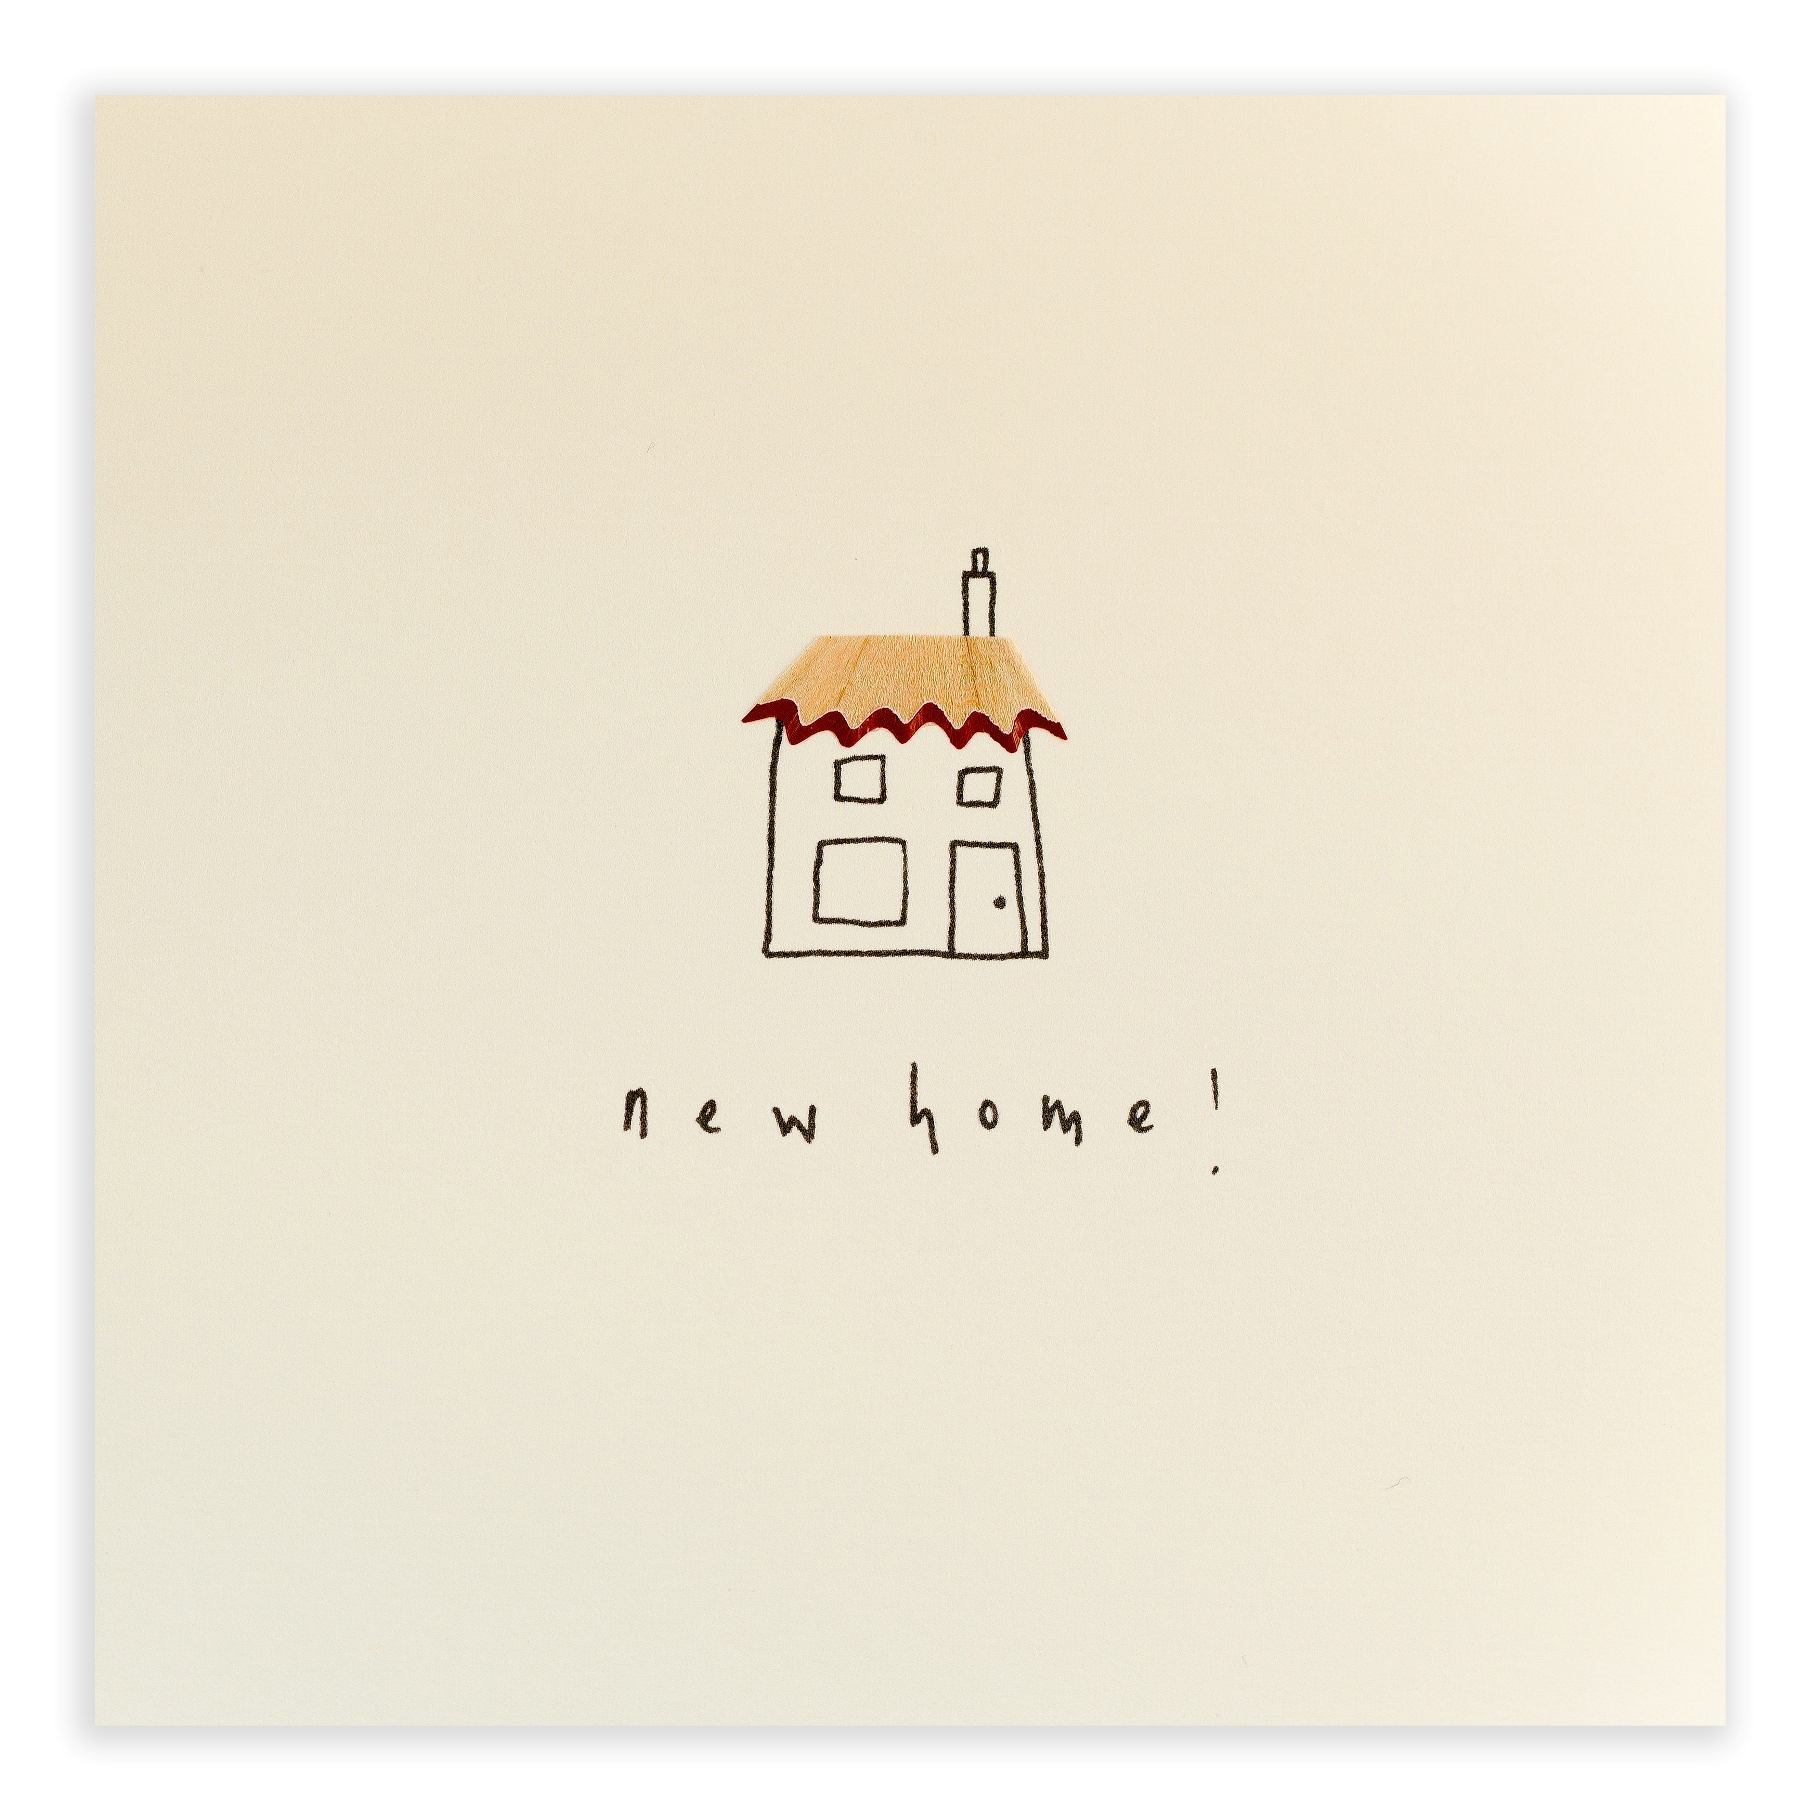 New home pencil shaving greeting card description kristyandbryce Image collections